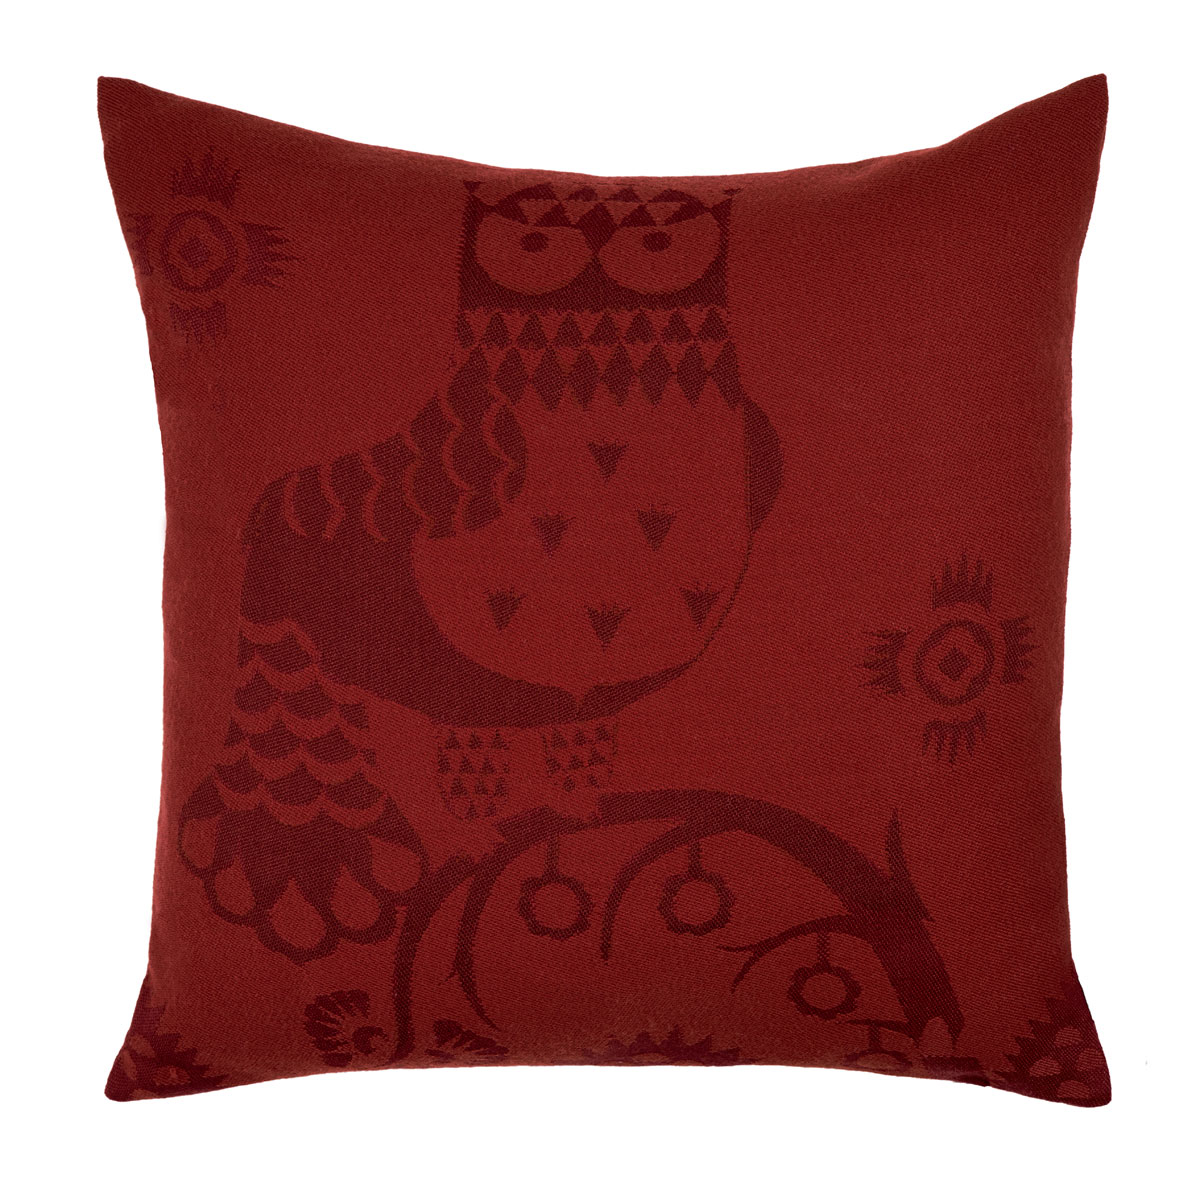 iittala taika red throw pillow. iittala taika red throw pillow  holiday décor  decorations